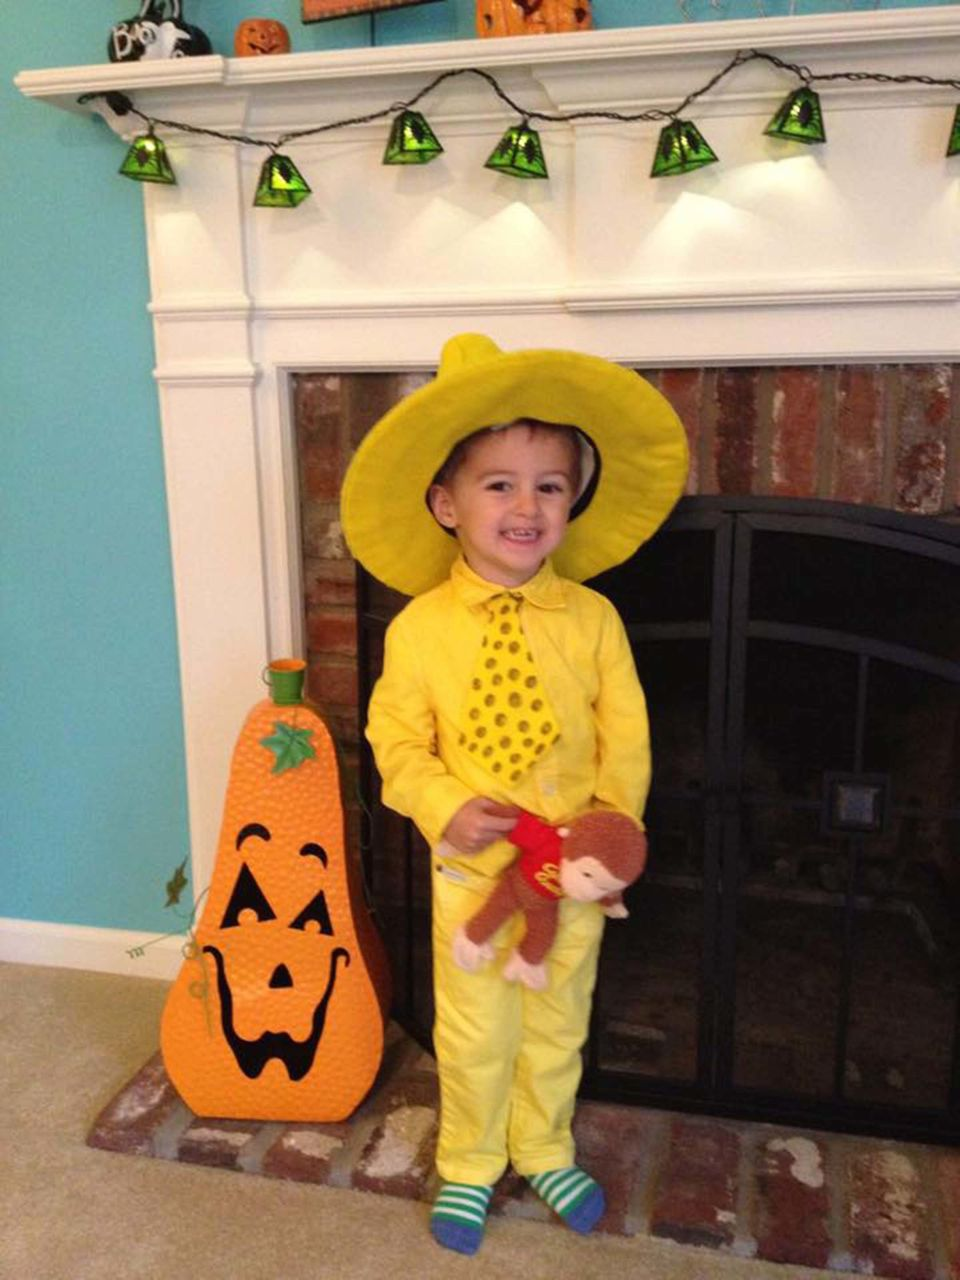 31 halloween costumes for boys that go beyond superheroes | huffpost